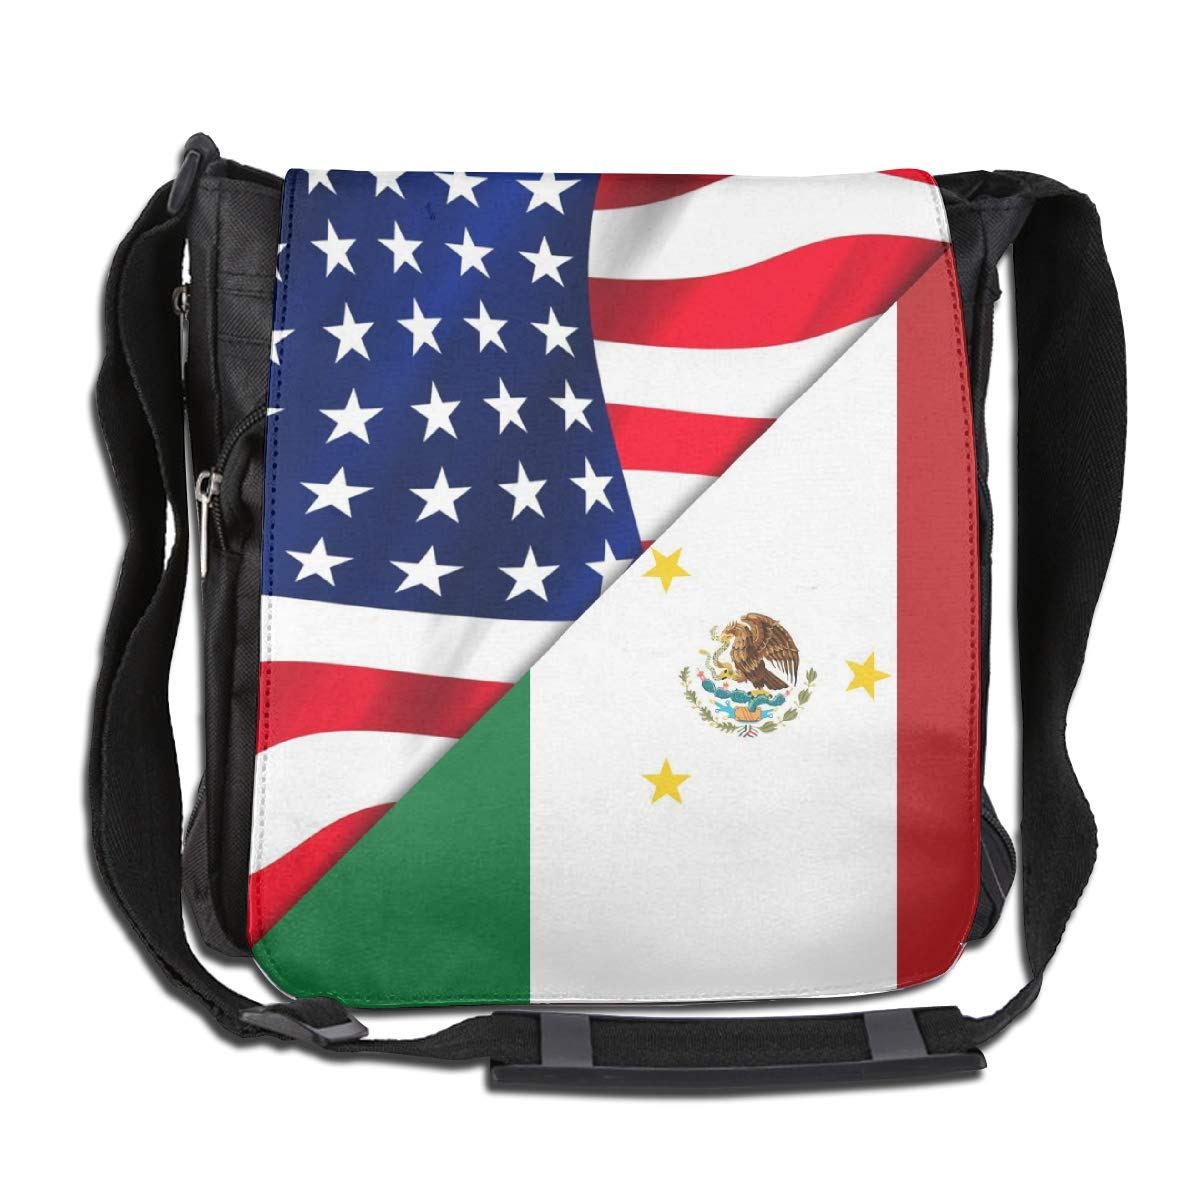 Unisex Stylish Satchel Messenger Bags American And Mexico Flag Crossbody Shoulder Bag Hiking Bags For School//Work//Trips